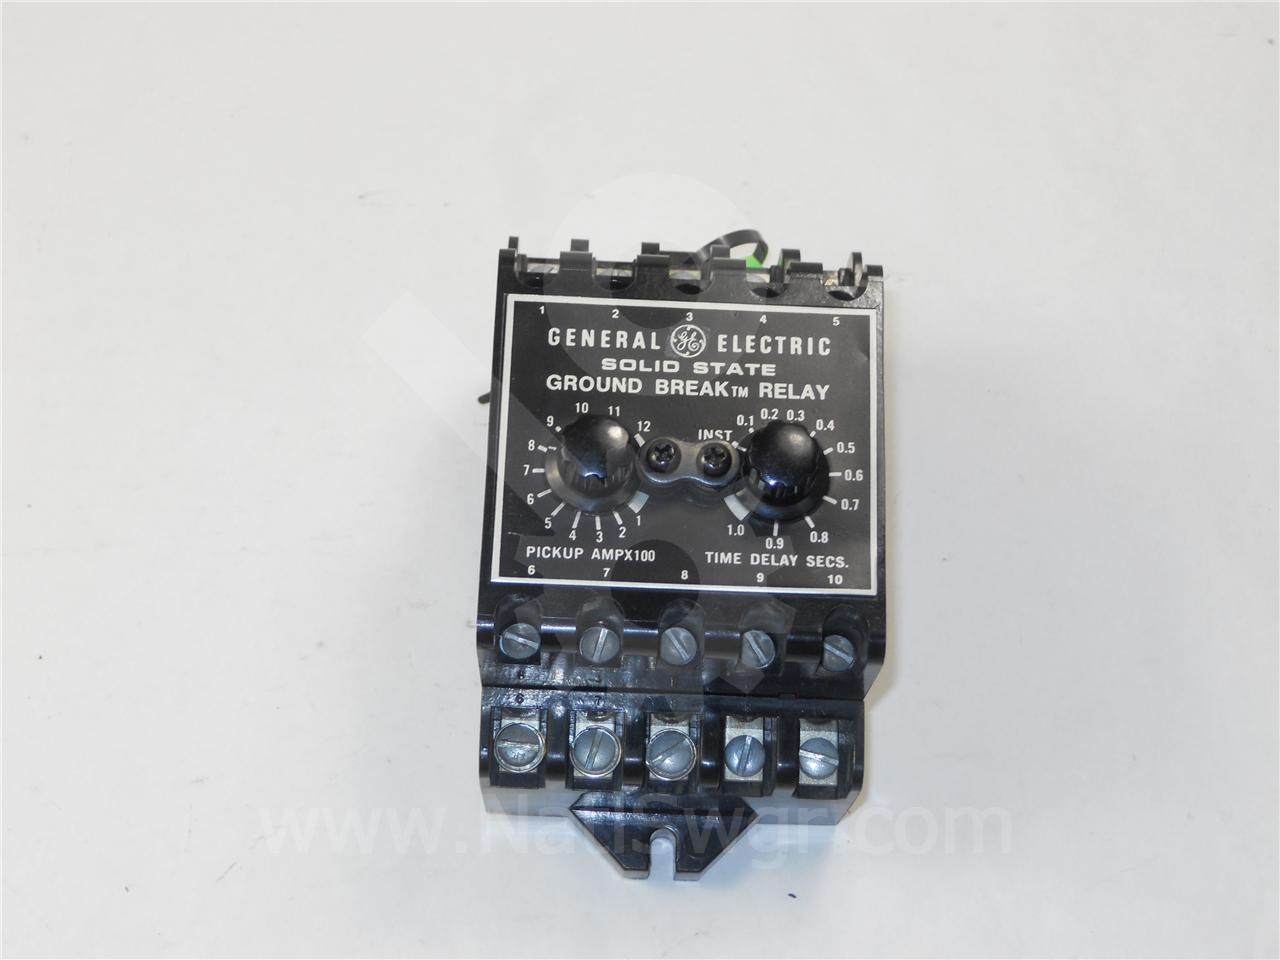 General Electric Ge Tgsr Ground Fault Relay Electrical For Dummies